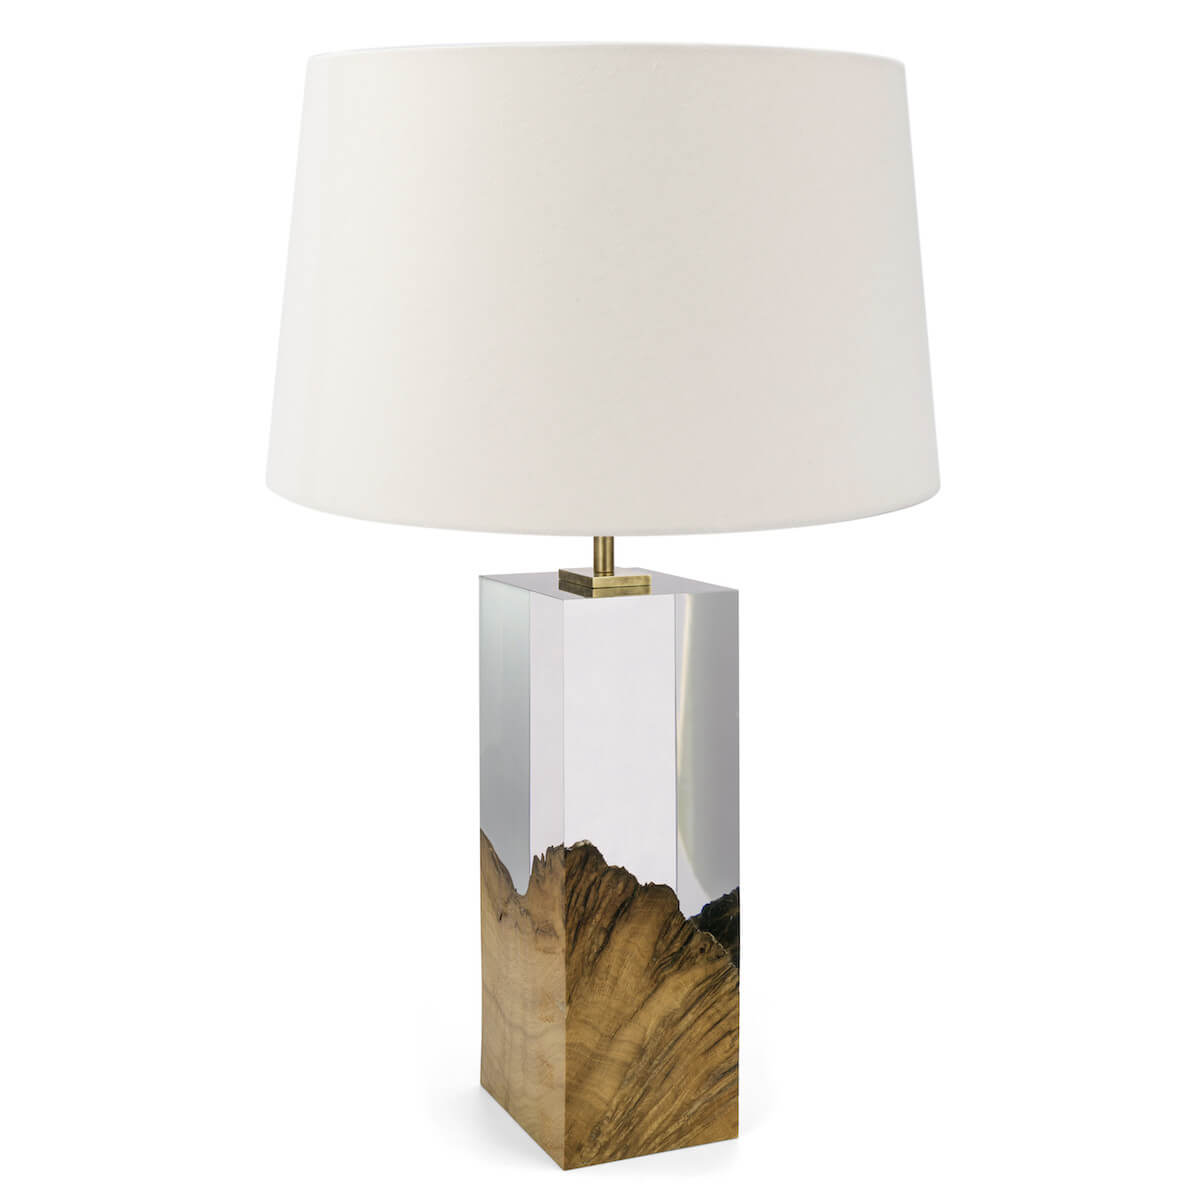 Oak and Acrylic Table Lamp by Iluka London for AUTHOR's collection of British-made luxury homeware